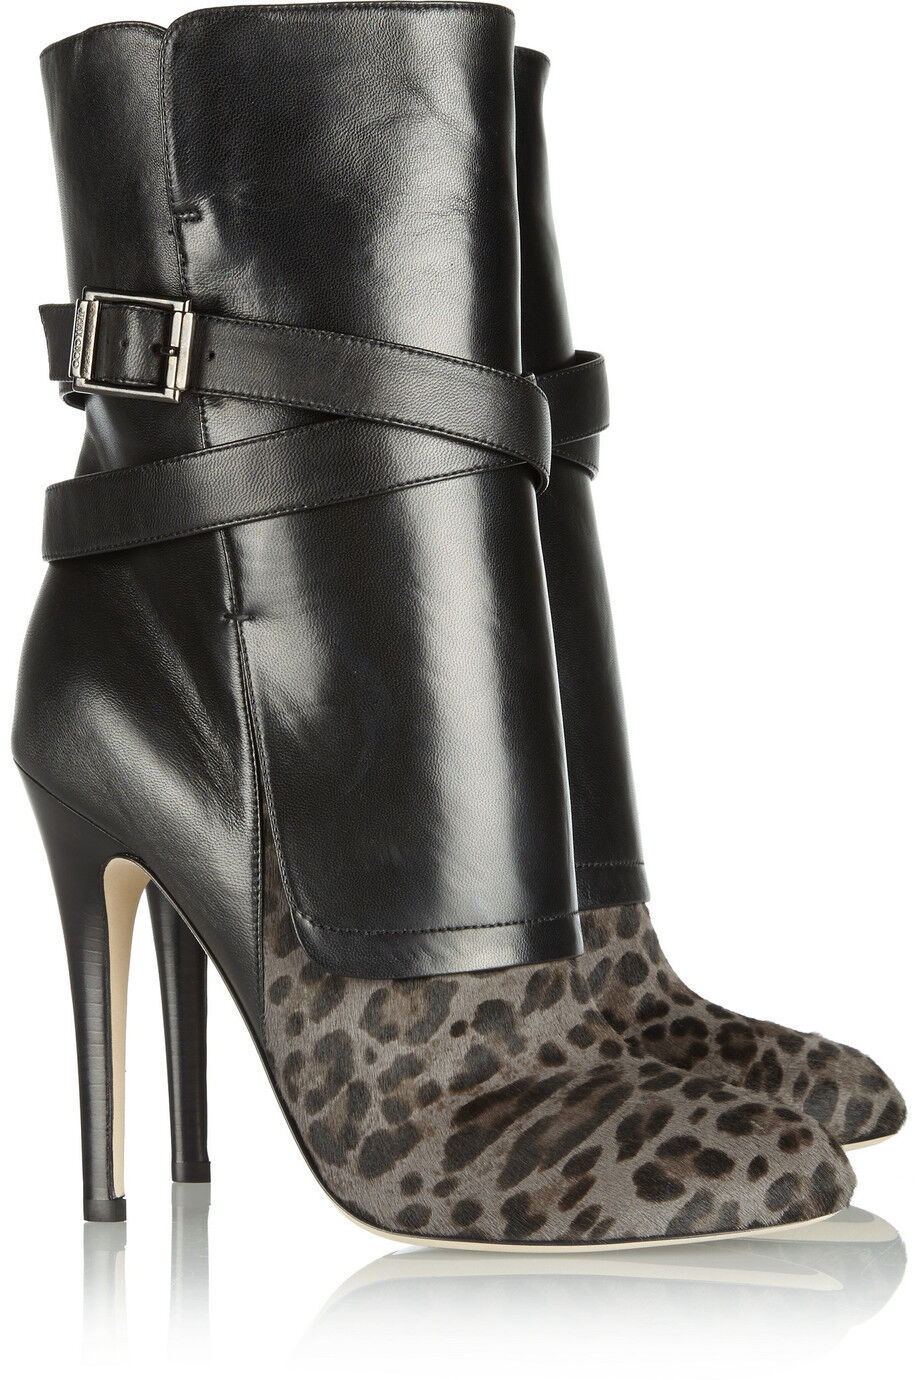 Jimmy Choo Leopard-Print Calf Hair And Nappa Leather Leather Leather Buckle Ankle Stiefel 40.5 418dc2